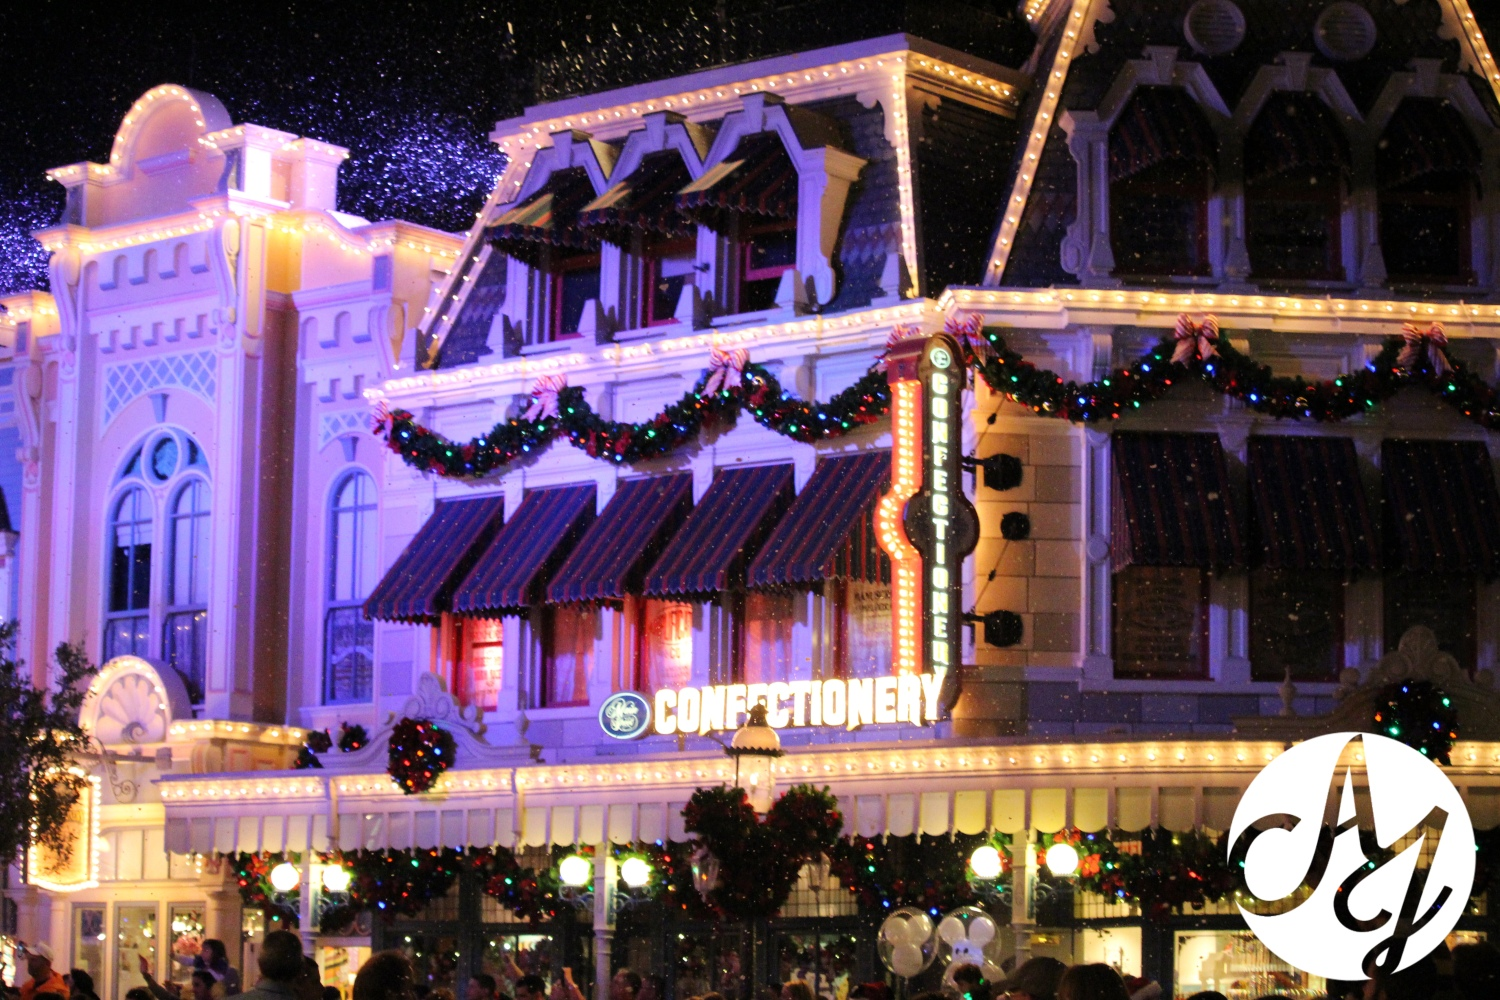 2014 Review of Mickey's Very Merry Christmas Party at Magic Kingdom